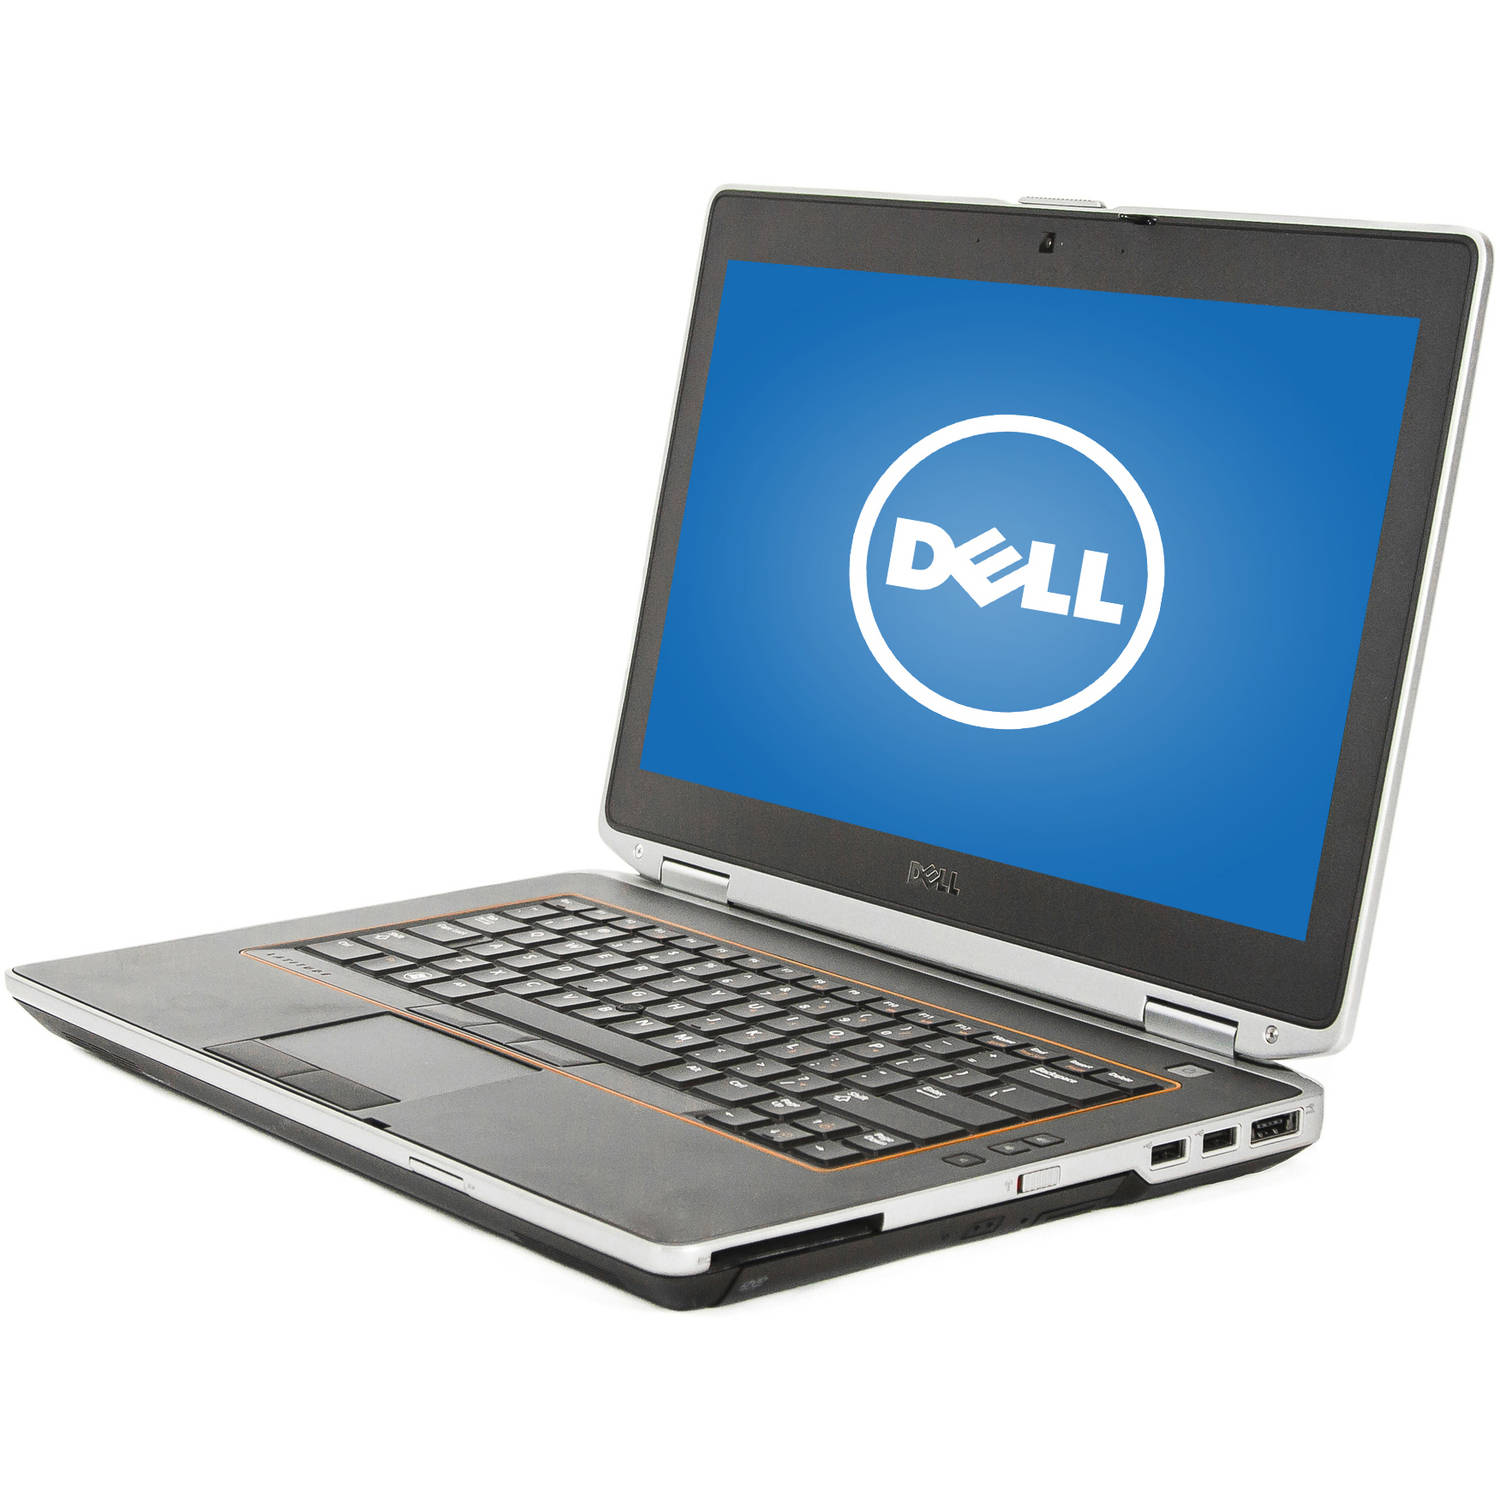 "Refurbished Dell 14"" E6420 Laptop PC with Intel Core i5 Processor, 4GB Memory, 320GB Hard Drive and Windows 10 Pro"